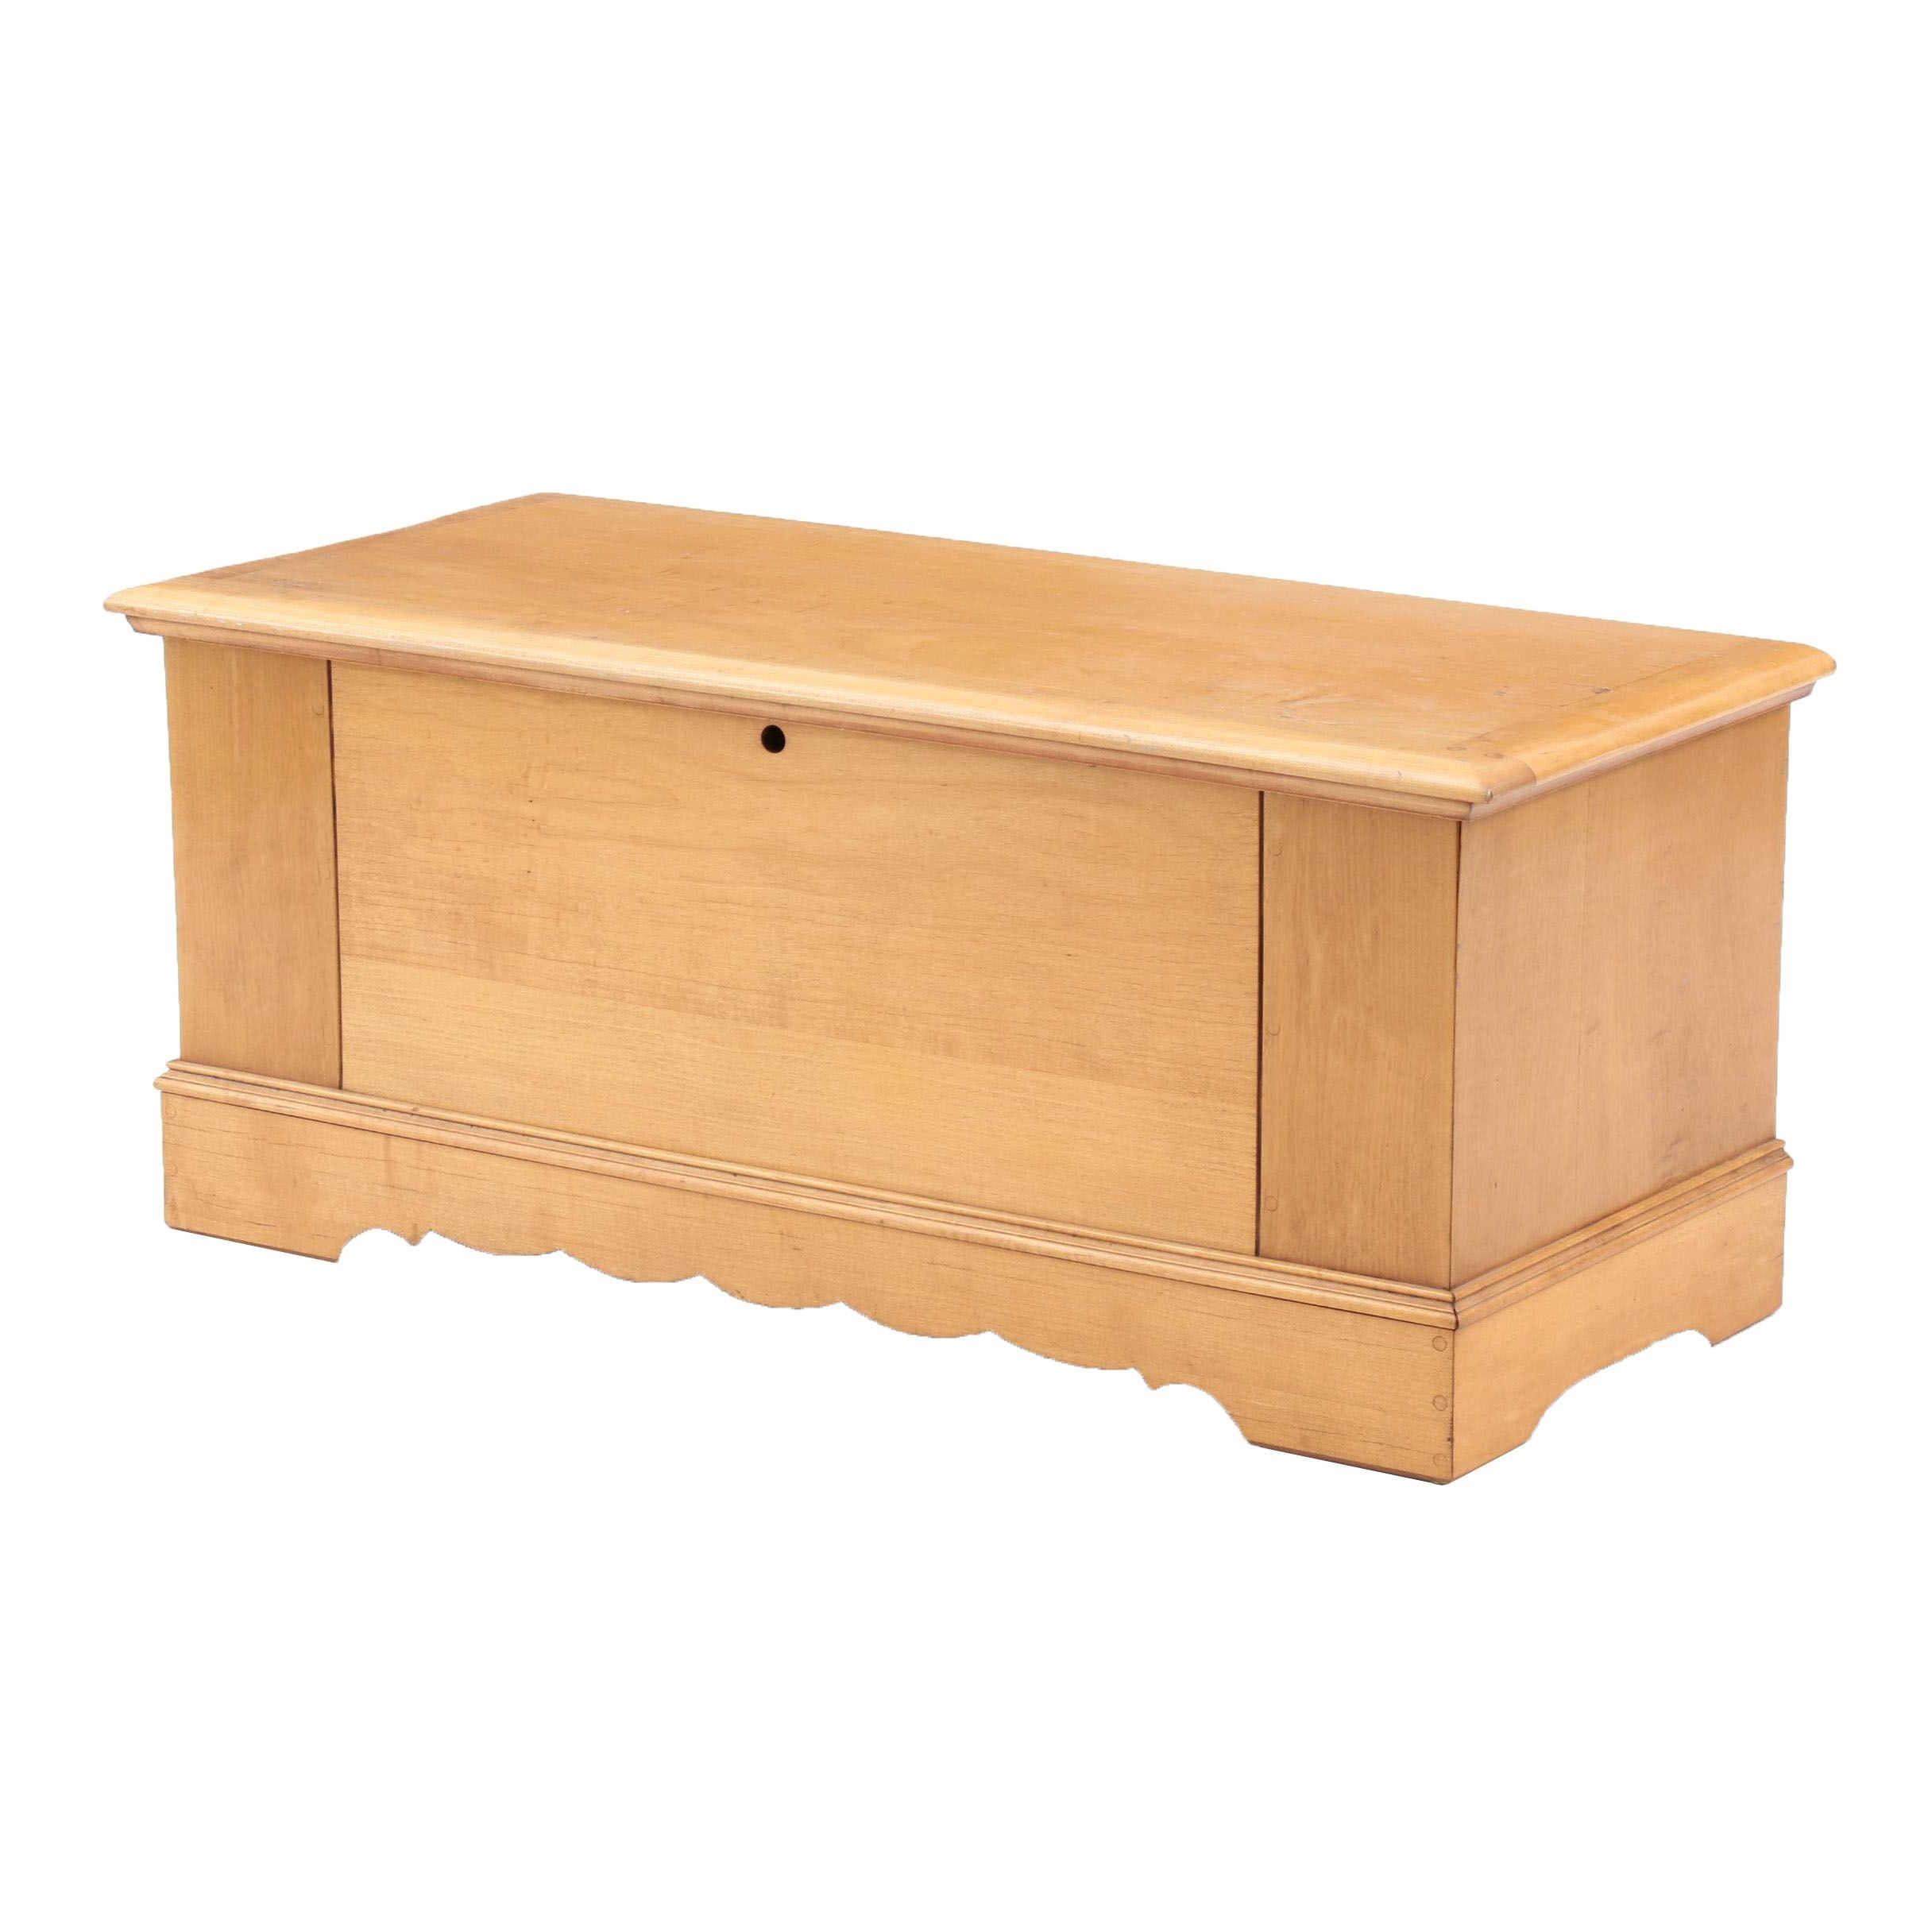 Maple Cedar Chest by Lane Furniture, Late 20th Century